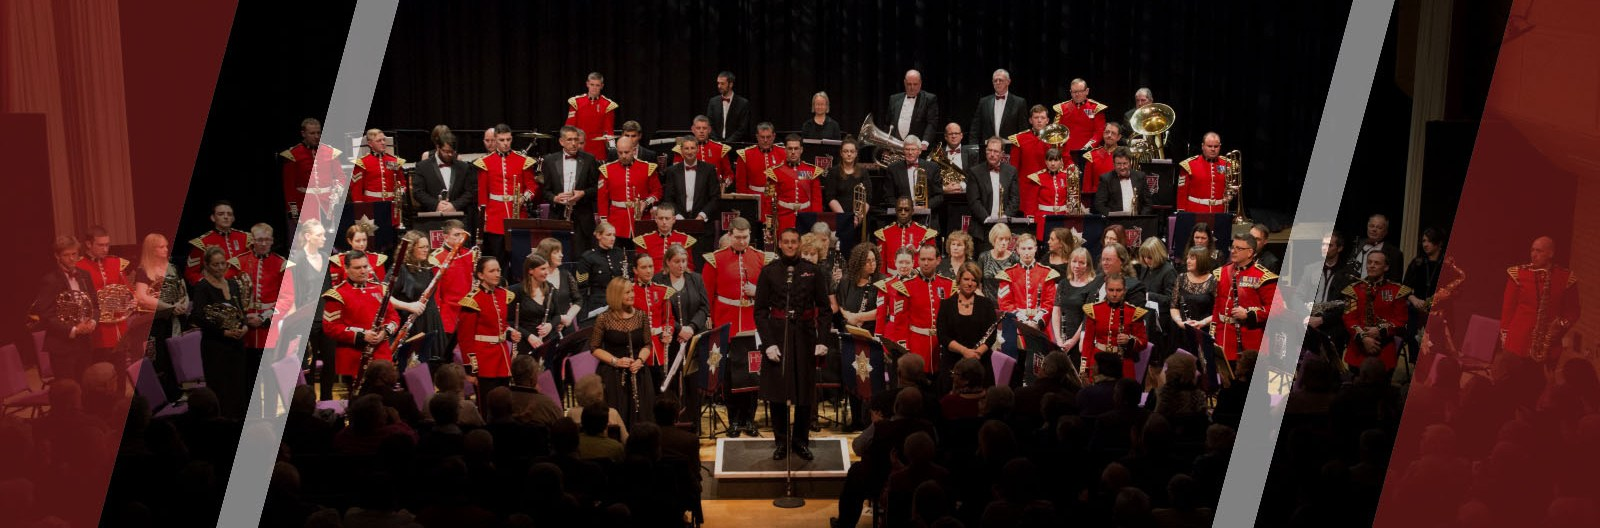 Irish Guards Massed Bands Concert 2017